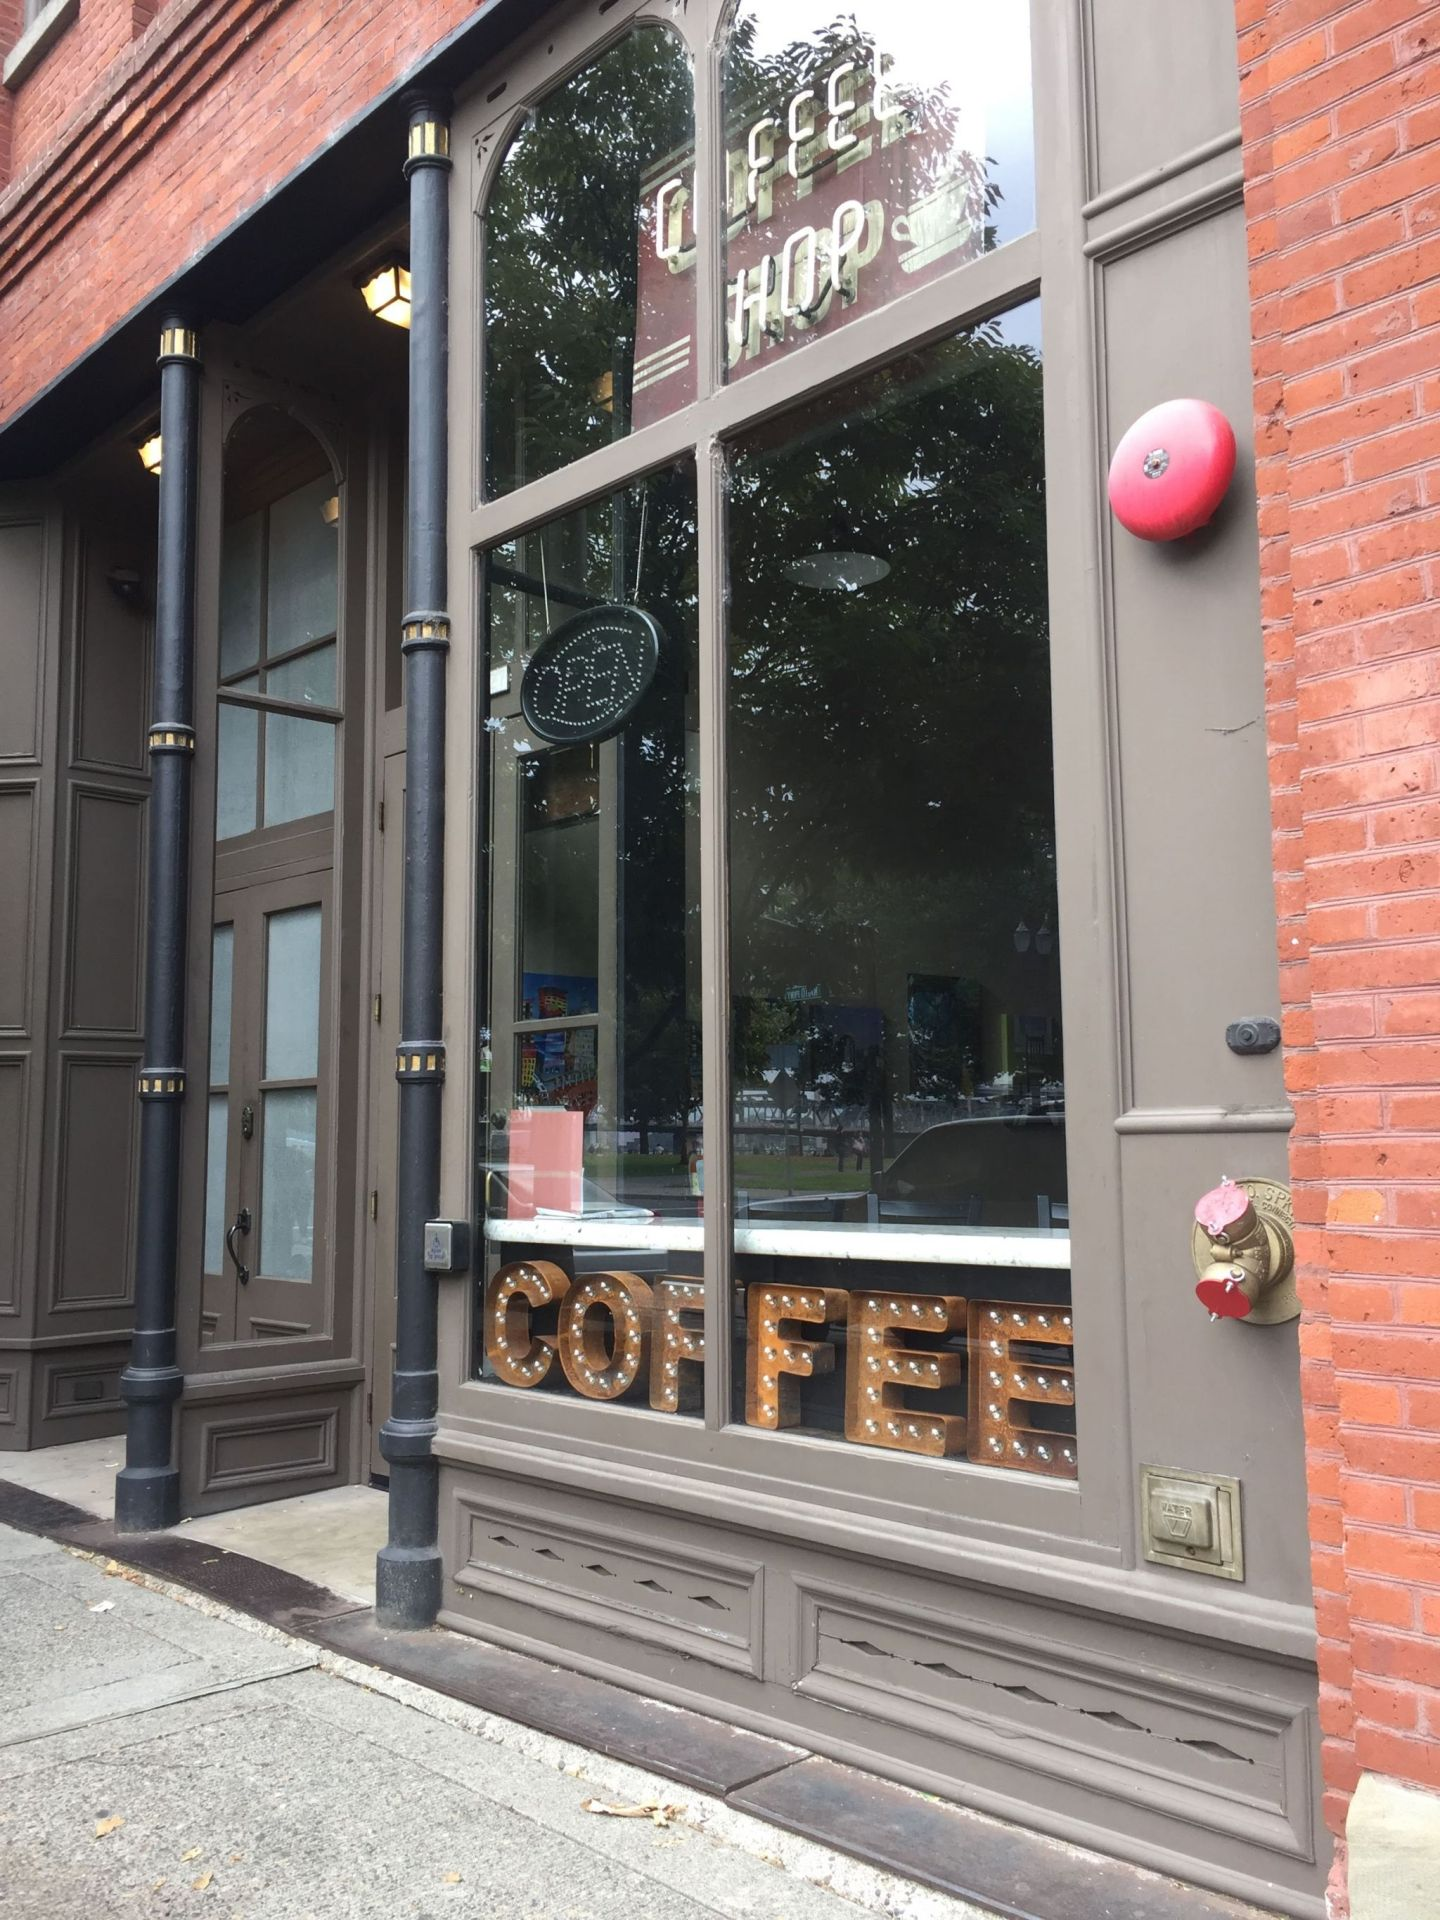 Hipster coffee shop in Portland